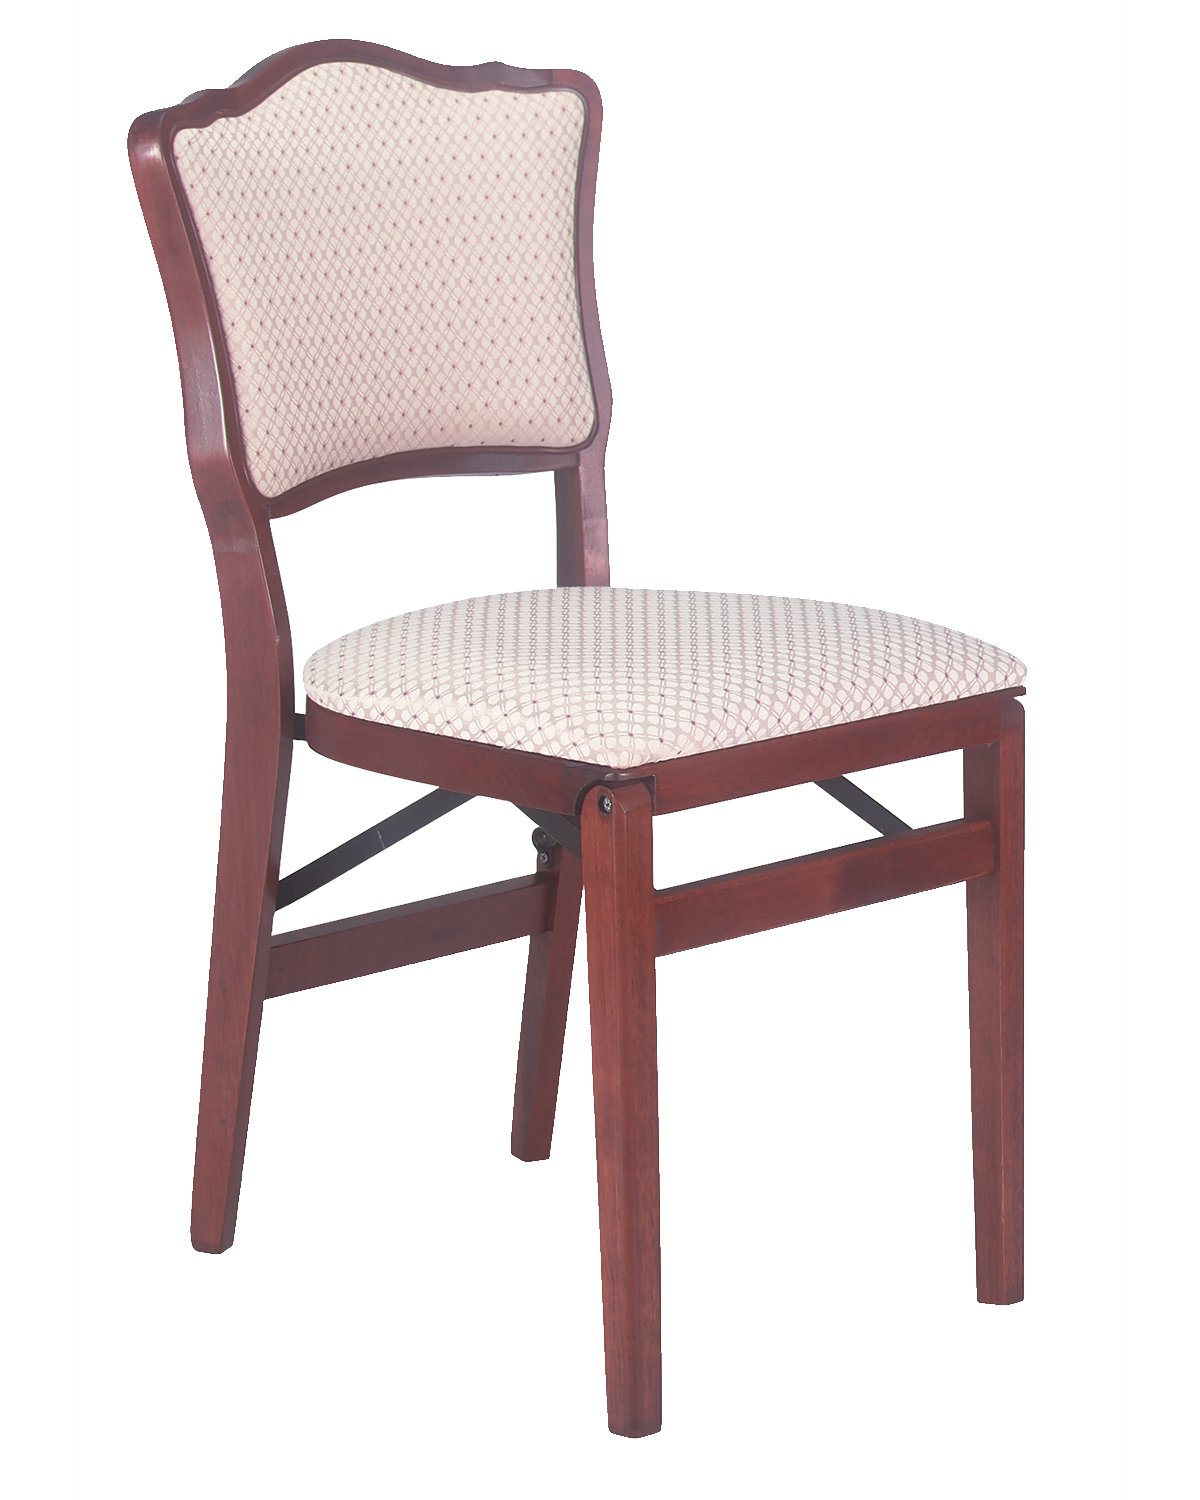 Stakmore French Upholstered Back Folding Chair Finish, Set of 2, Cherry